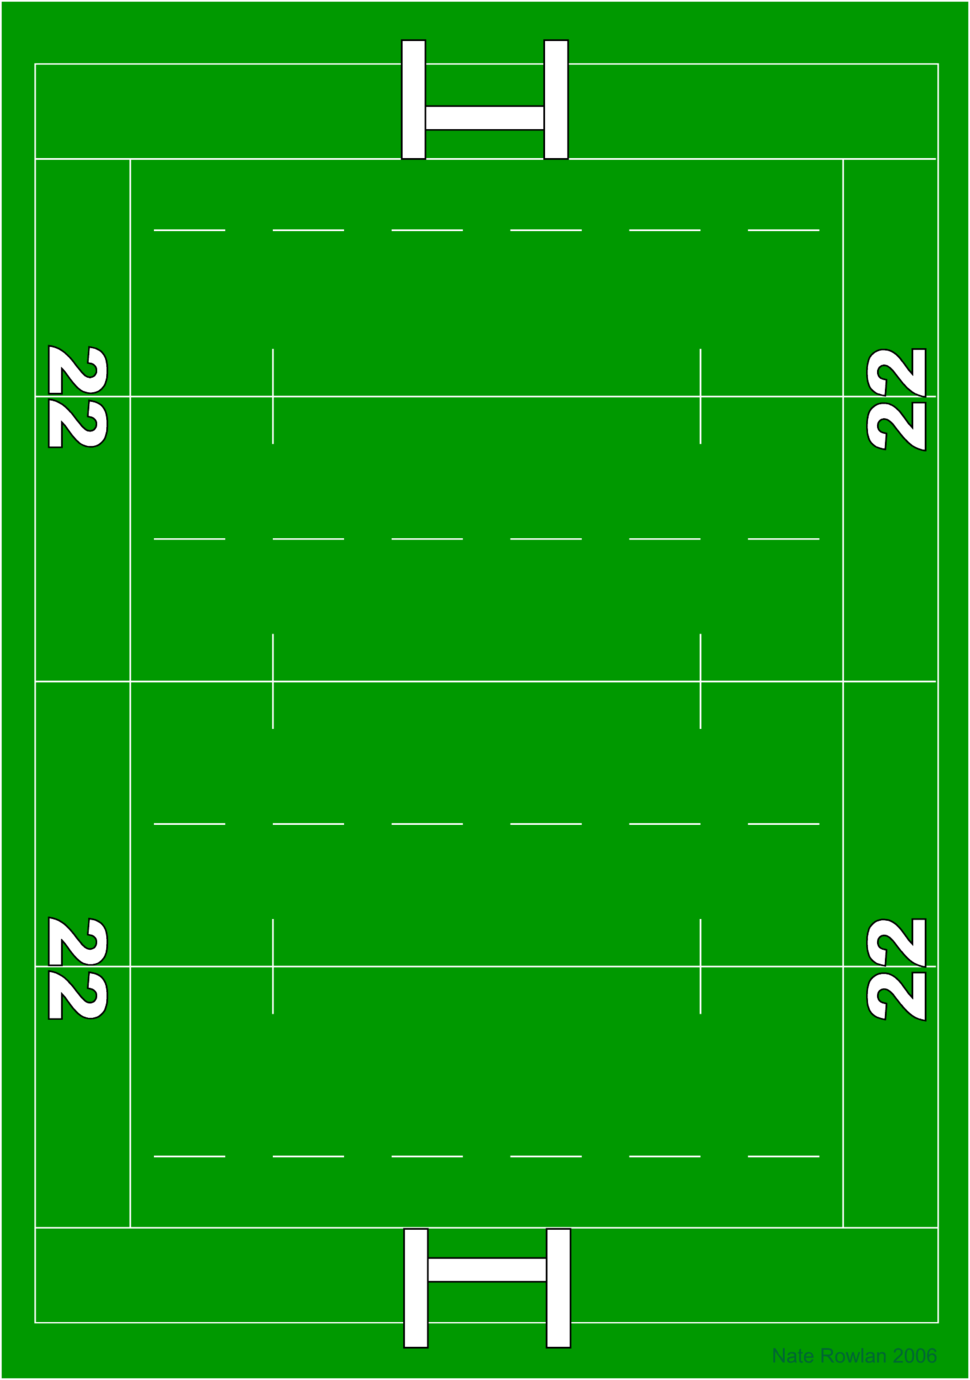 Rugbypitch